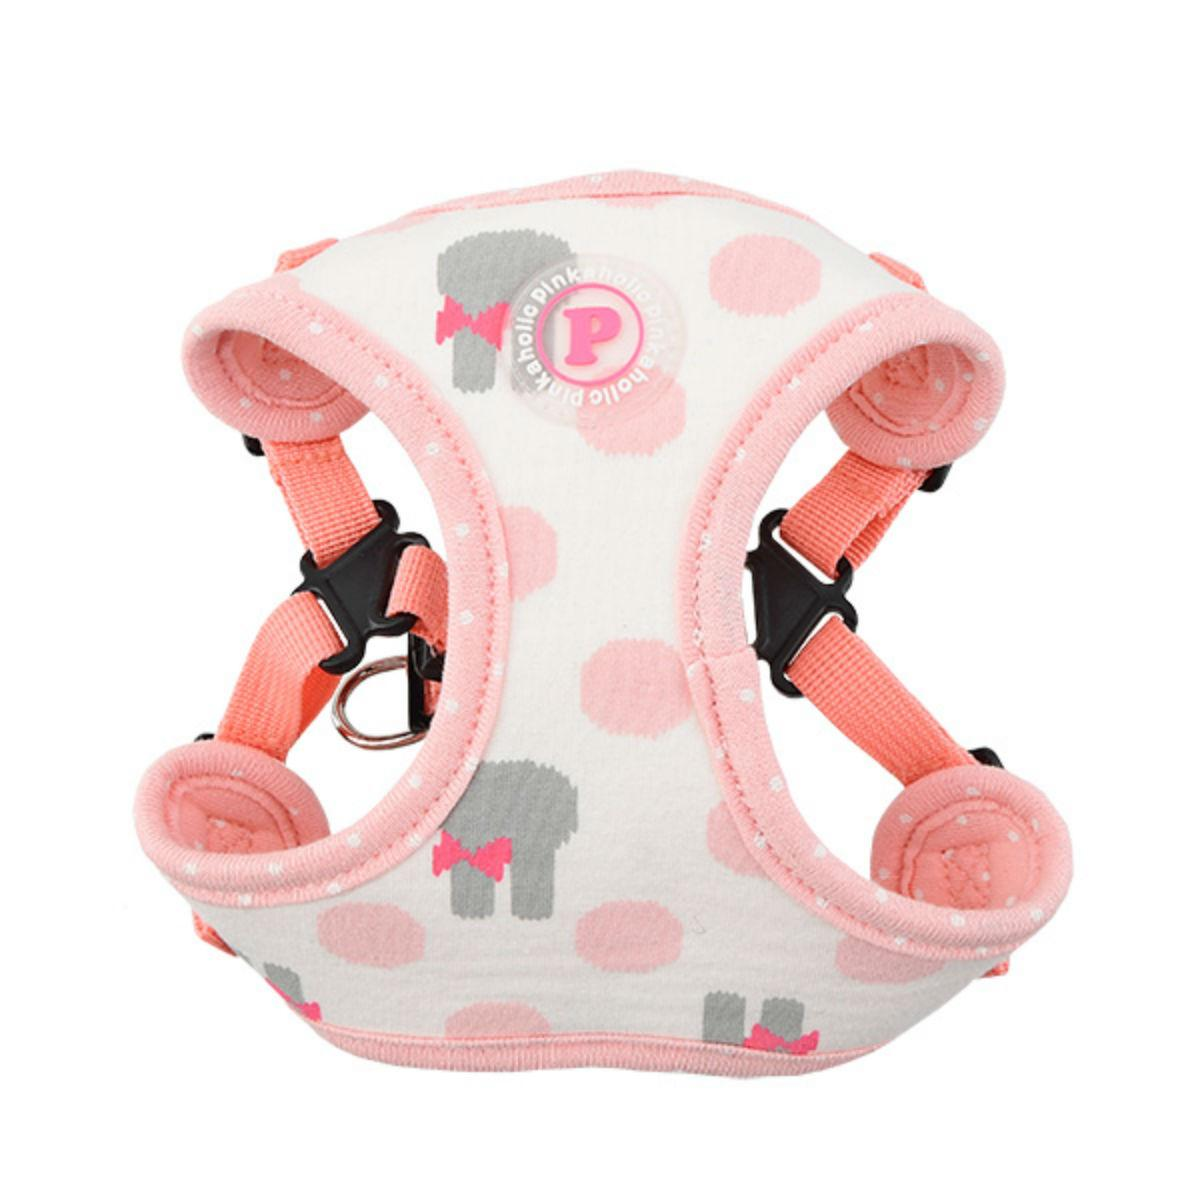 Lapine Comfort Dog Harness by Pinkaholic - Ivory